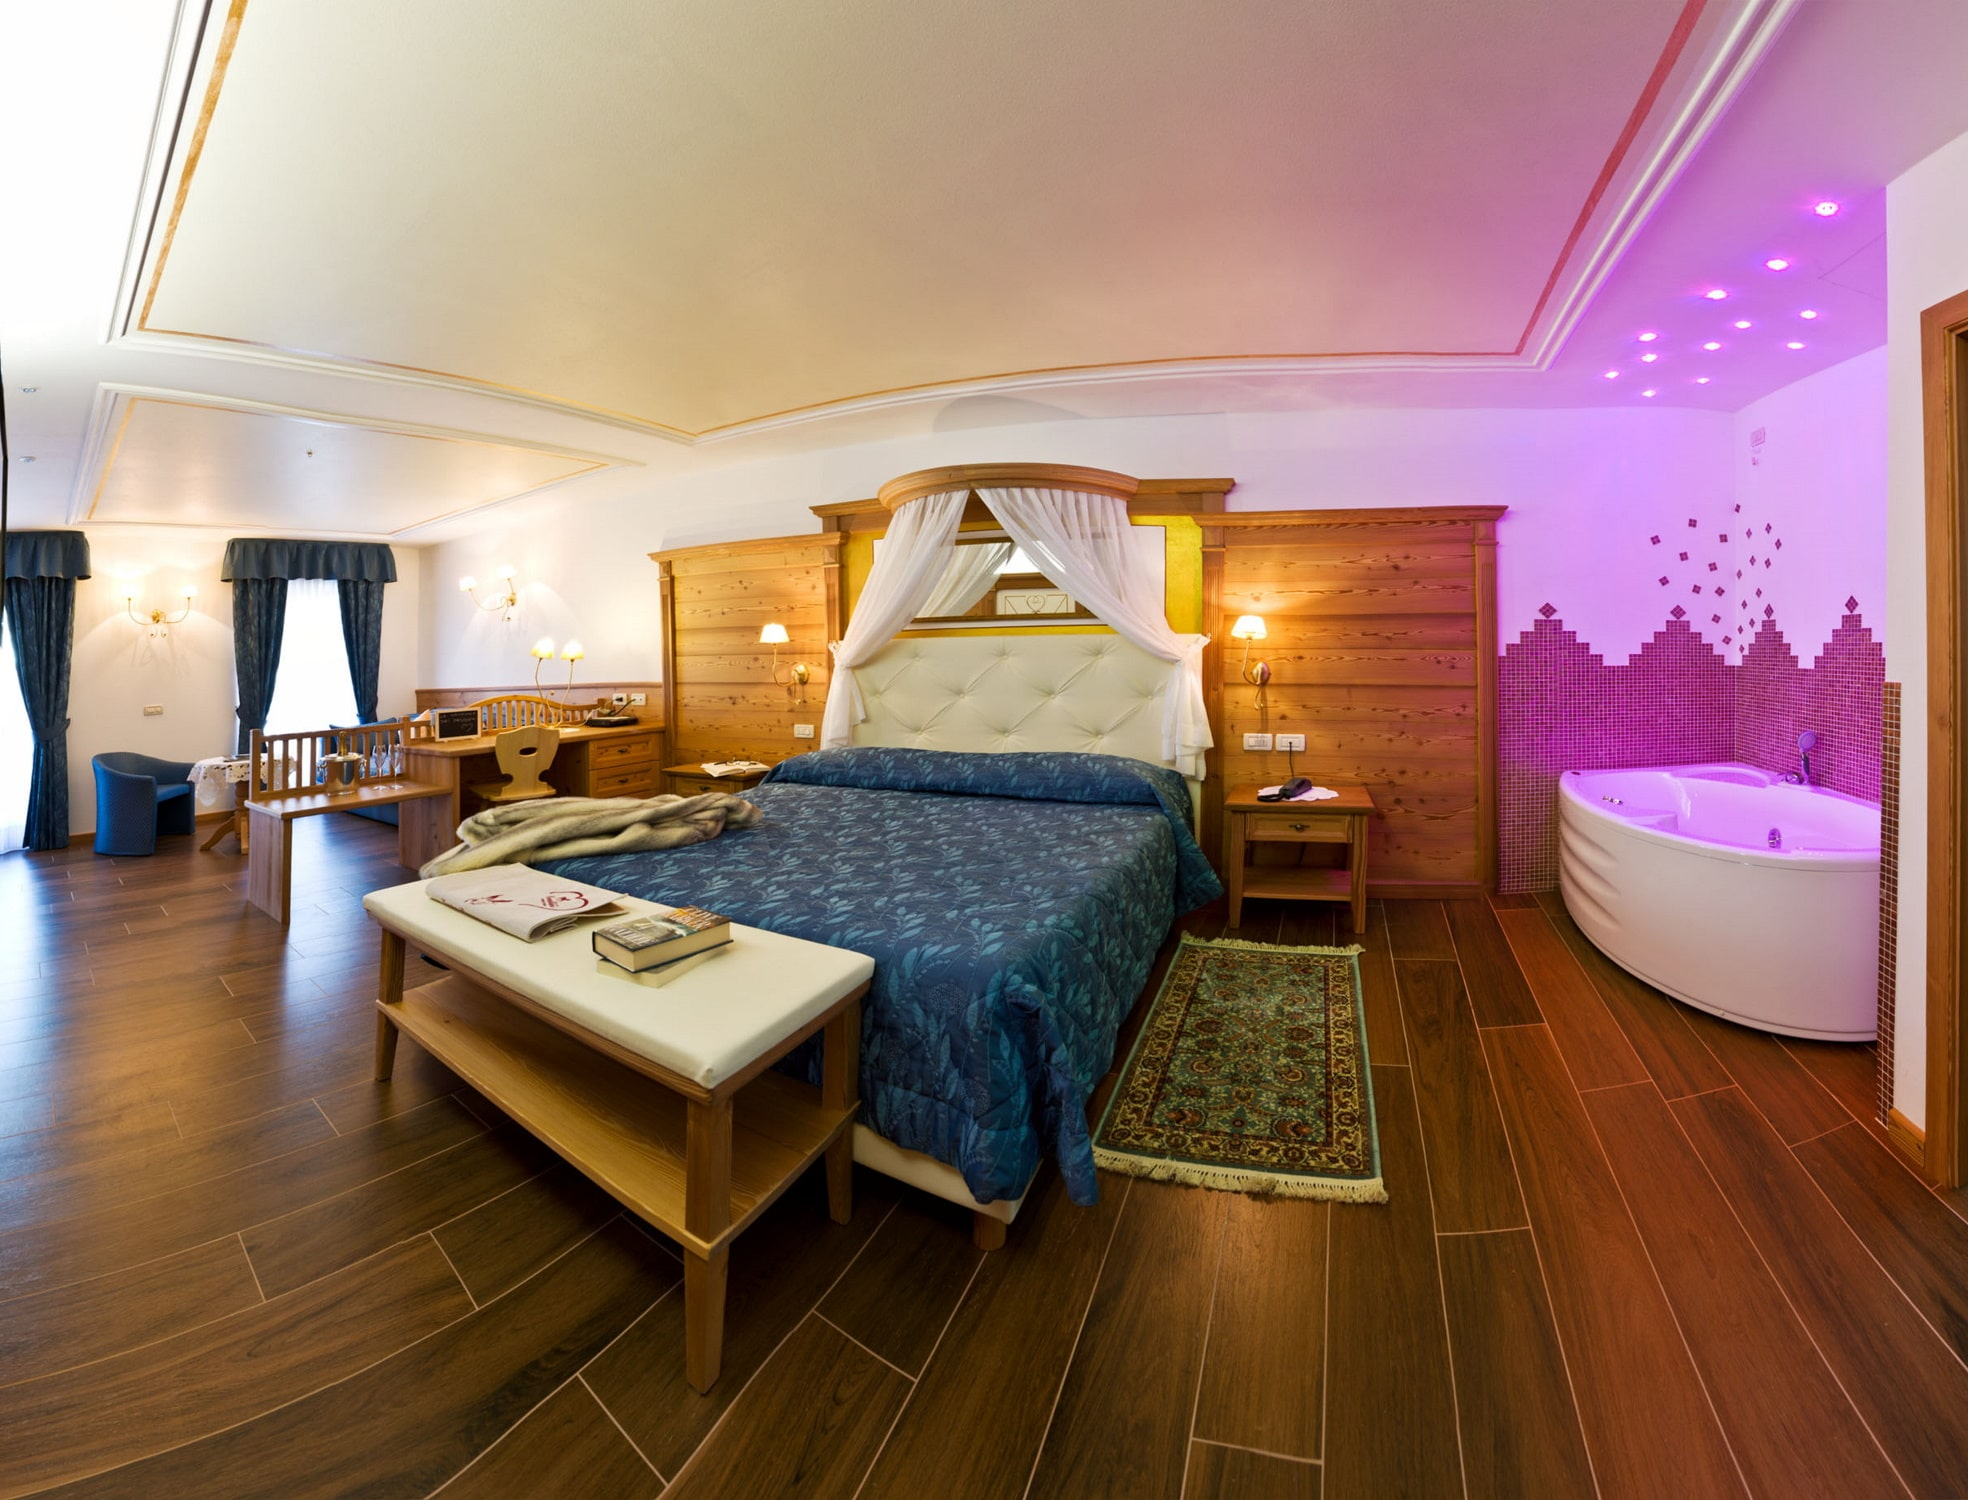 The Suites in Andalo